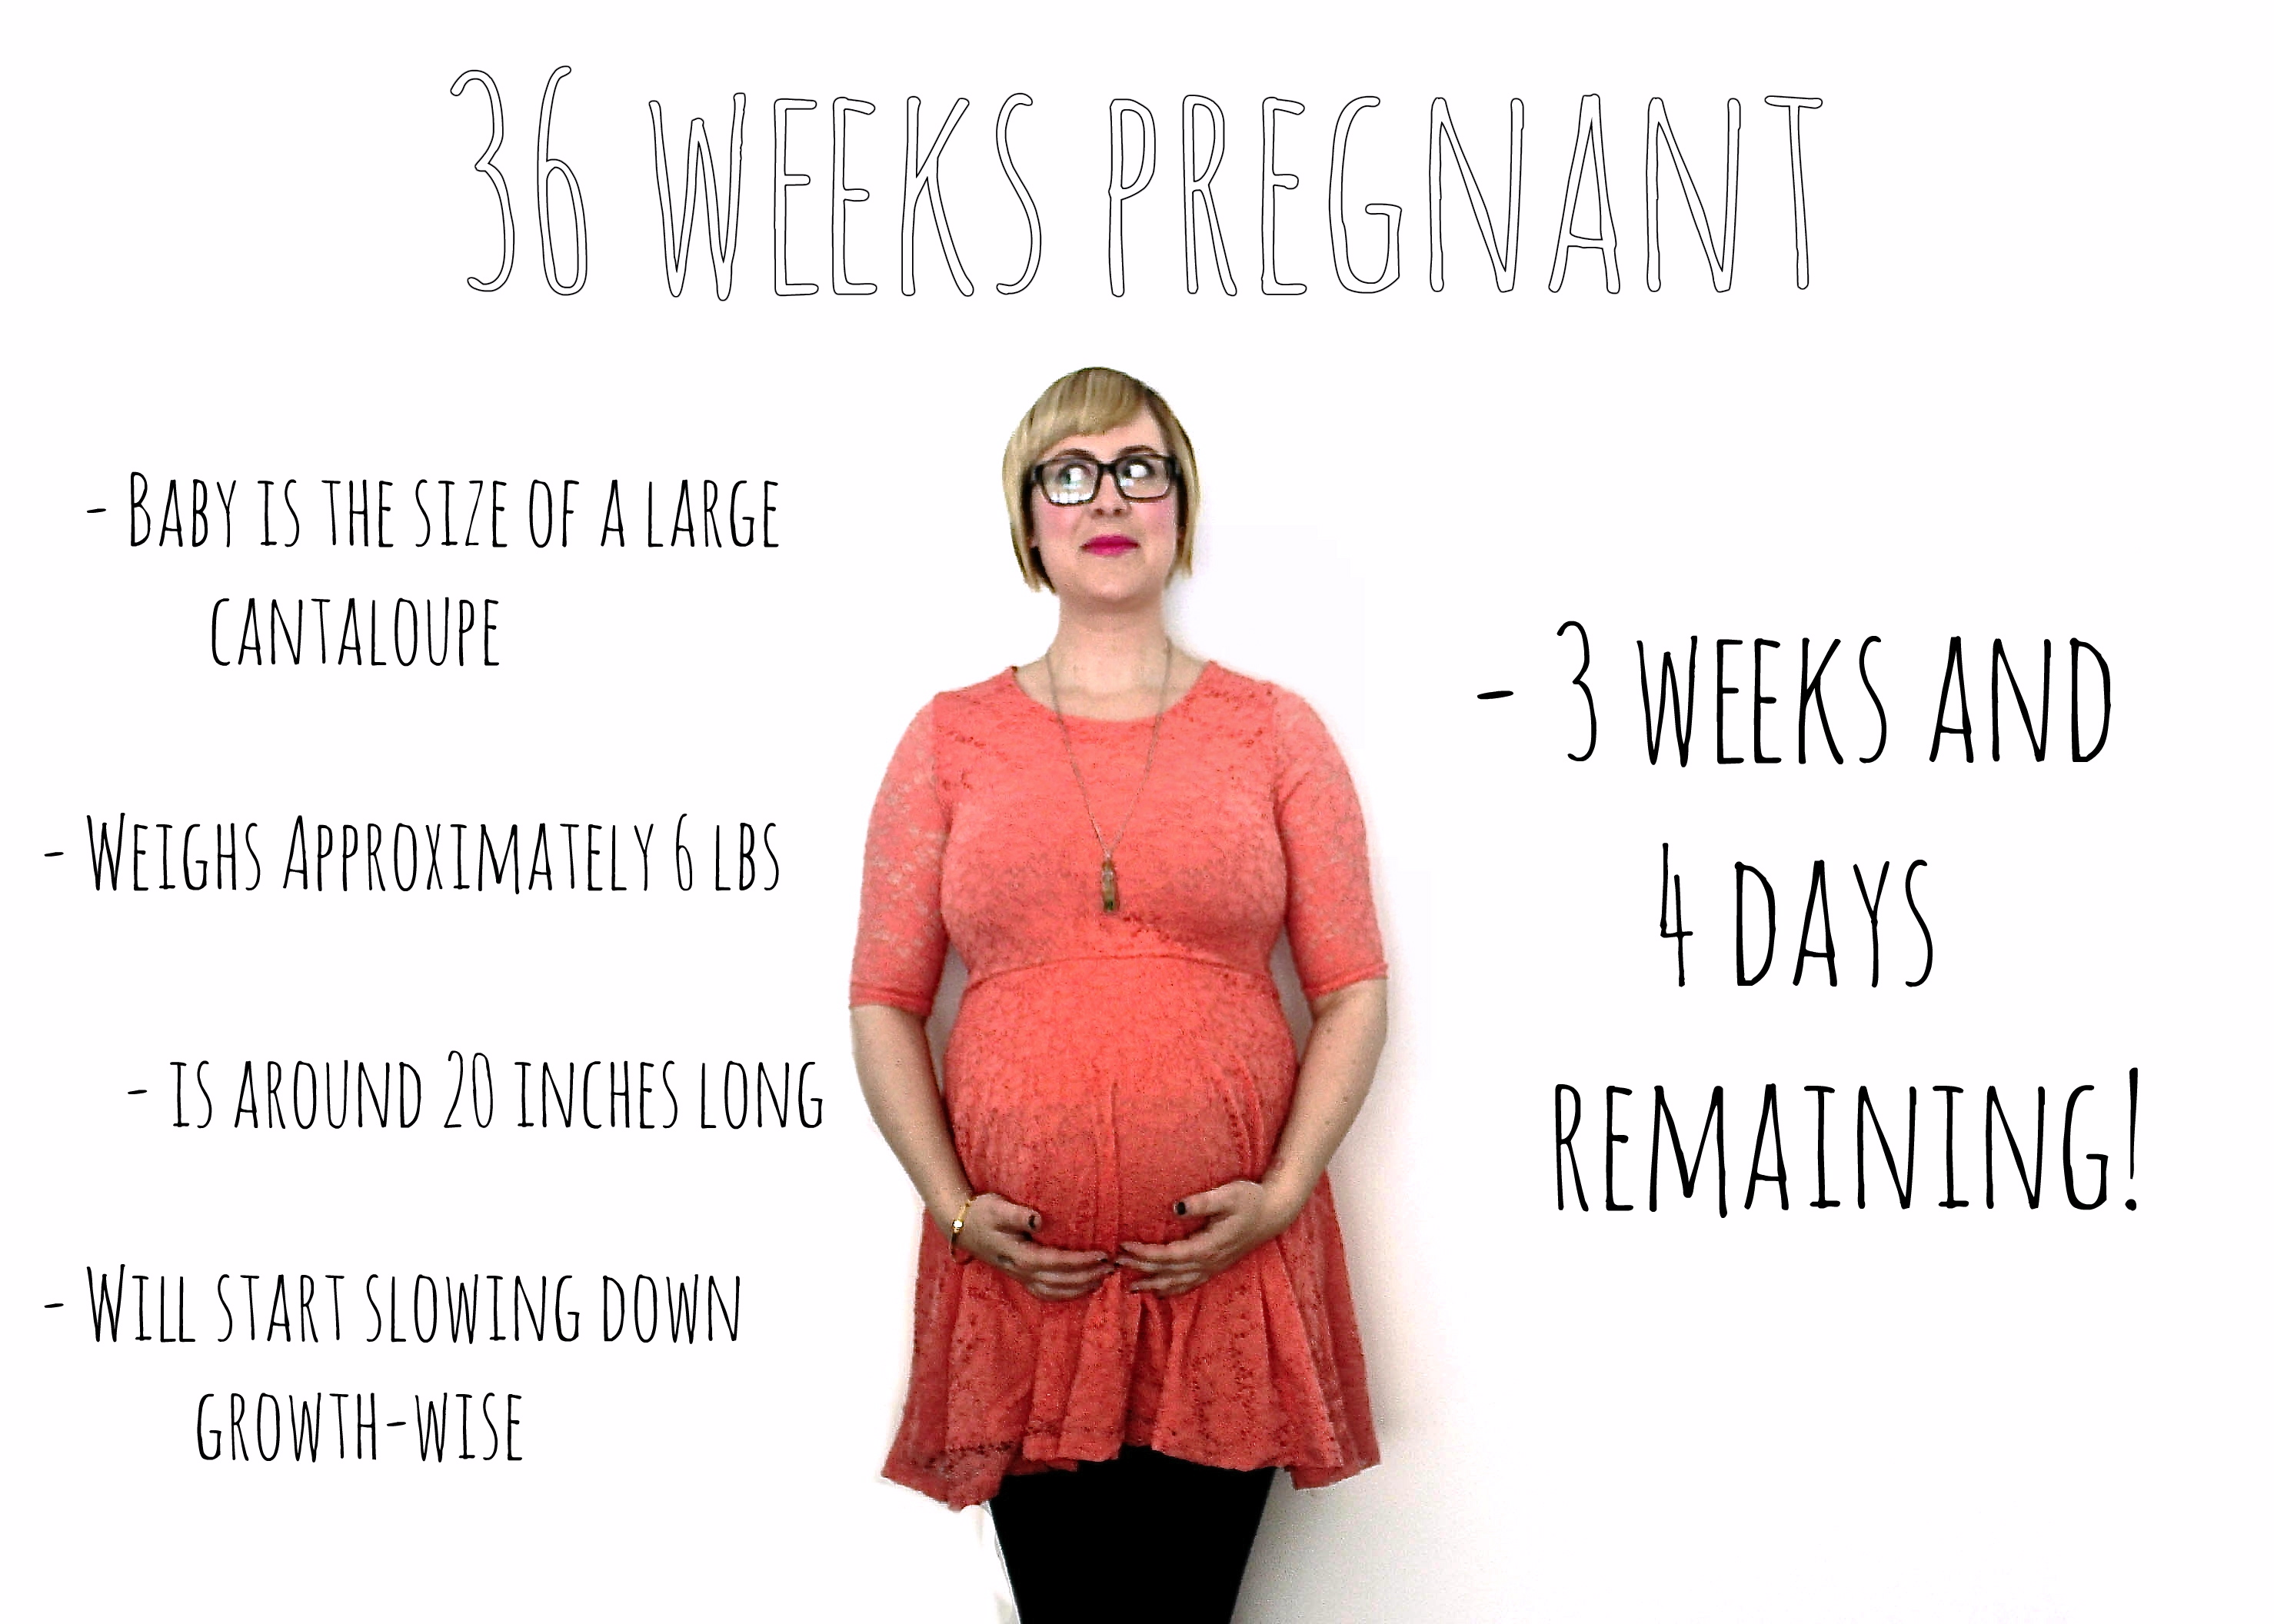 The 36th week of pregnancy